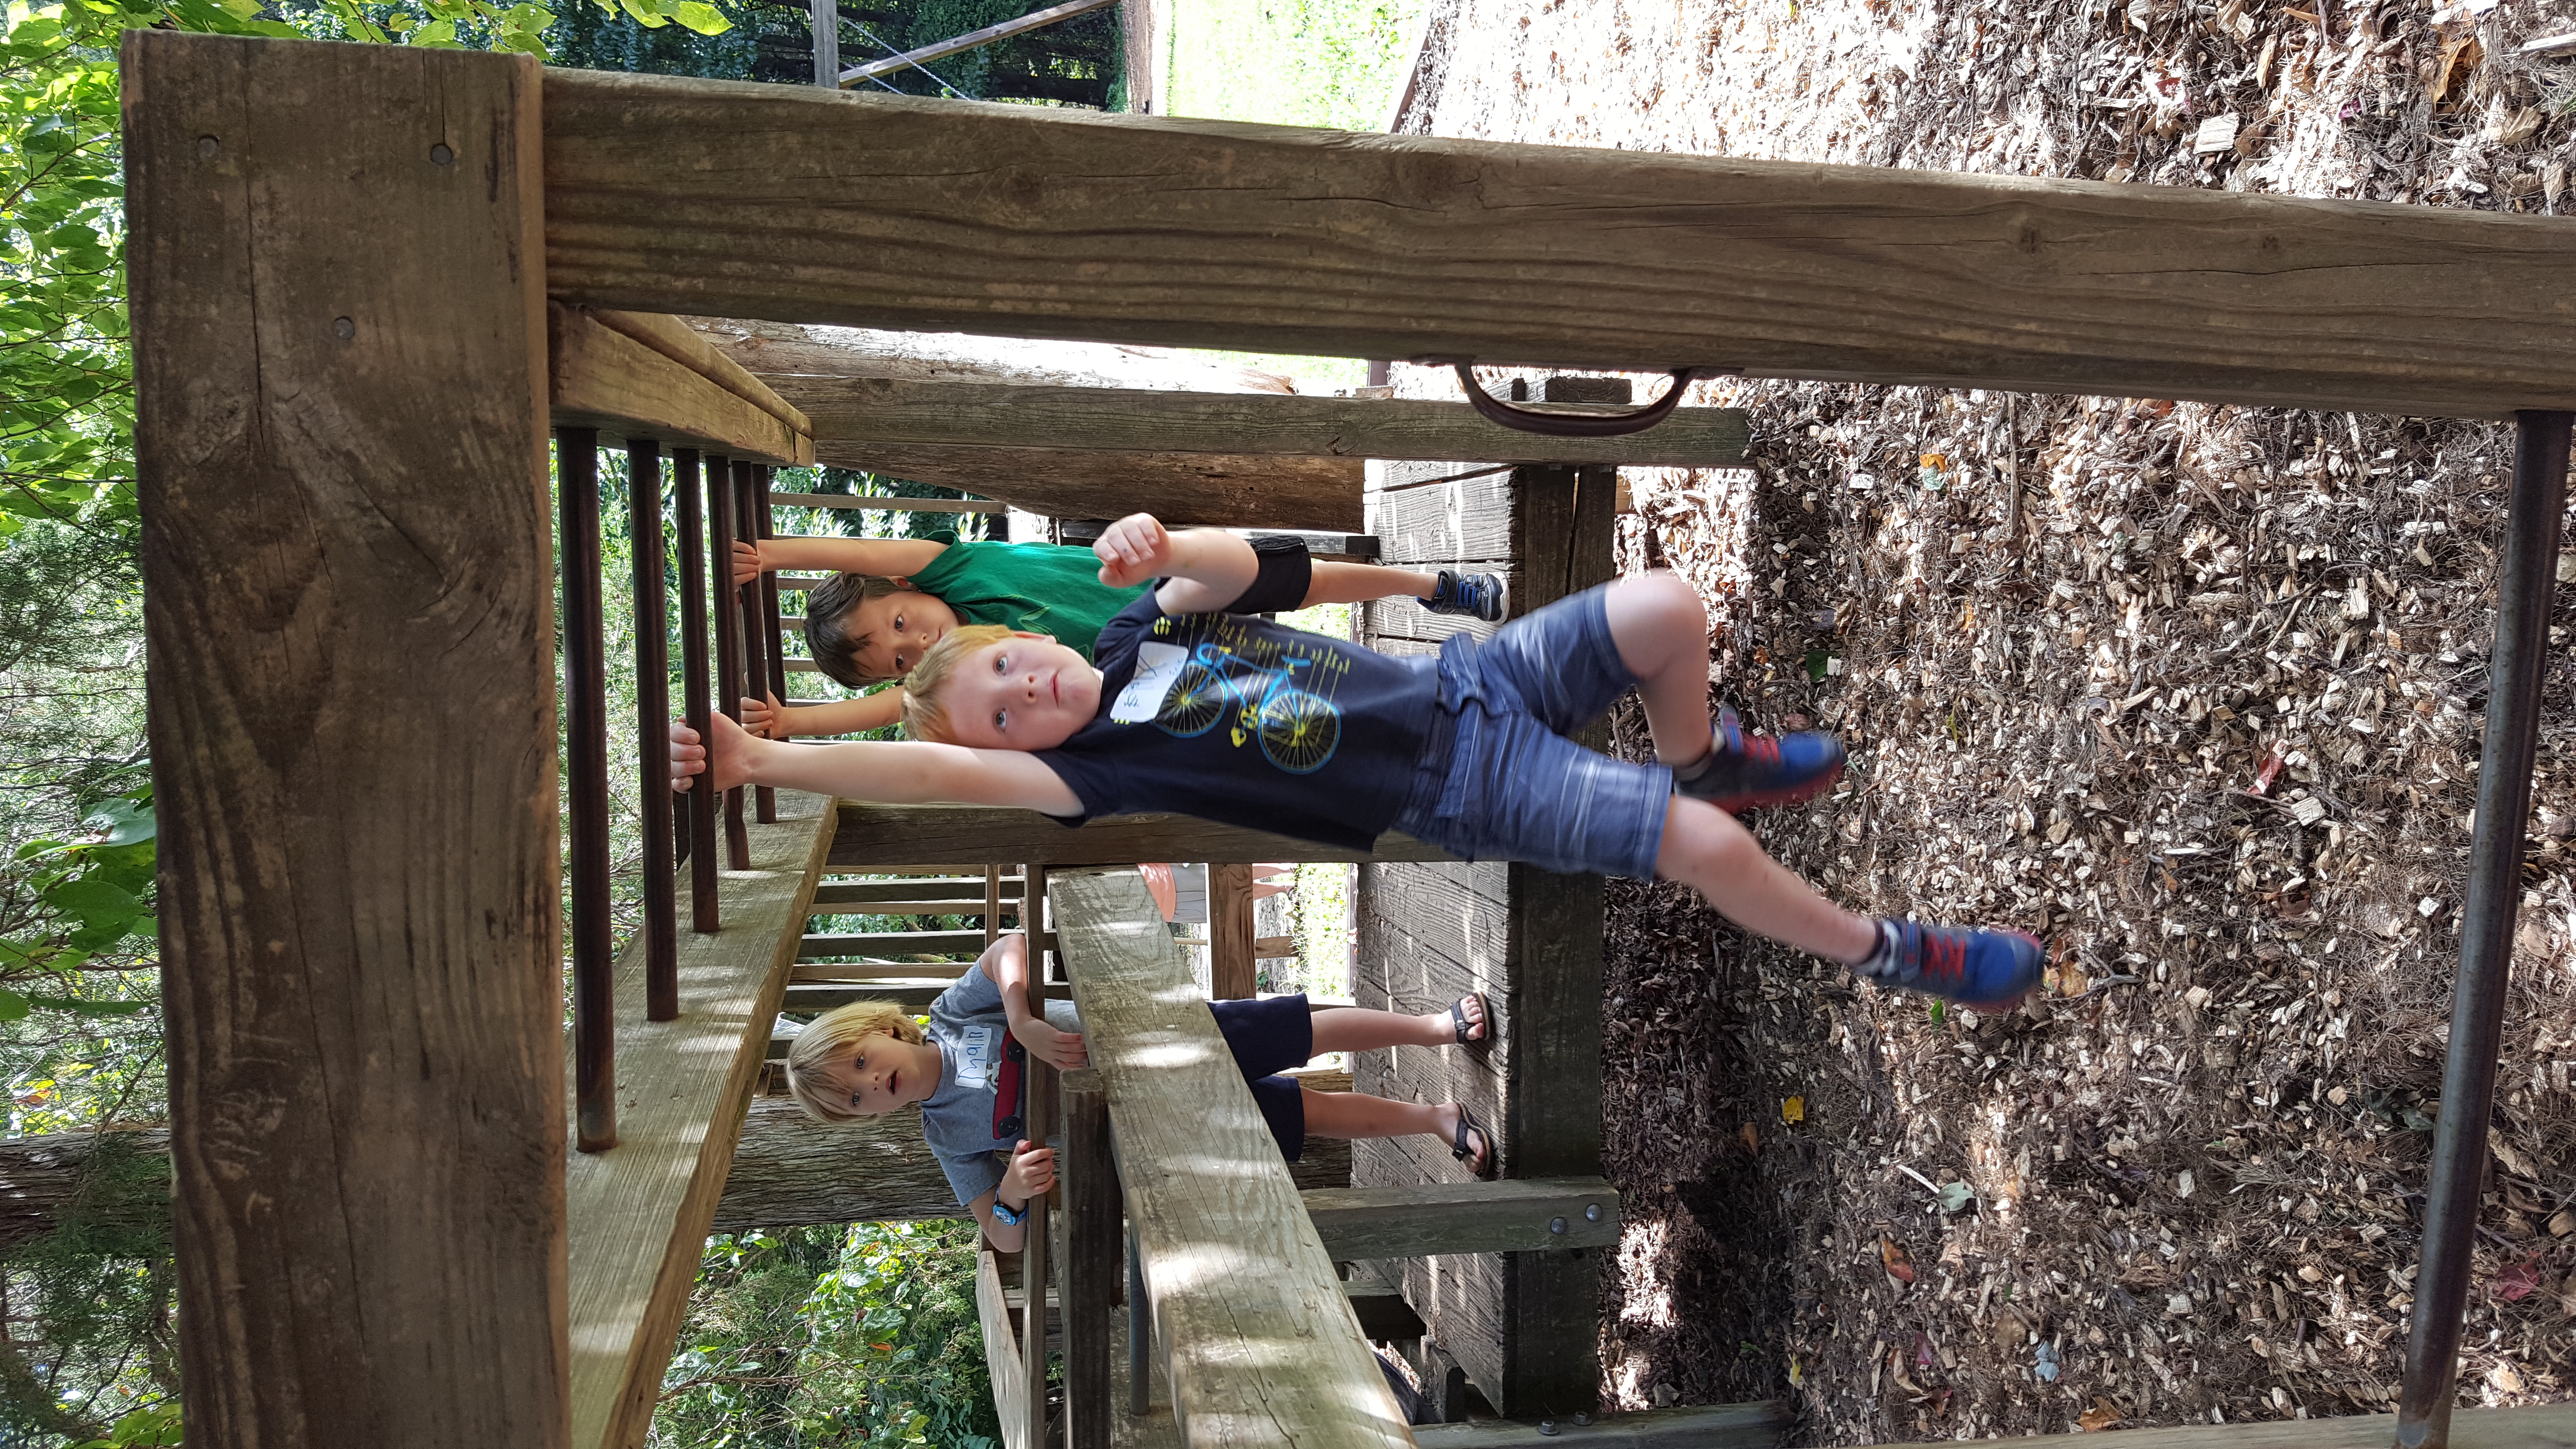 Fun on the Monkey Bars during the Early Primary Play Day, 8/23/16